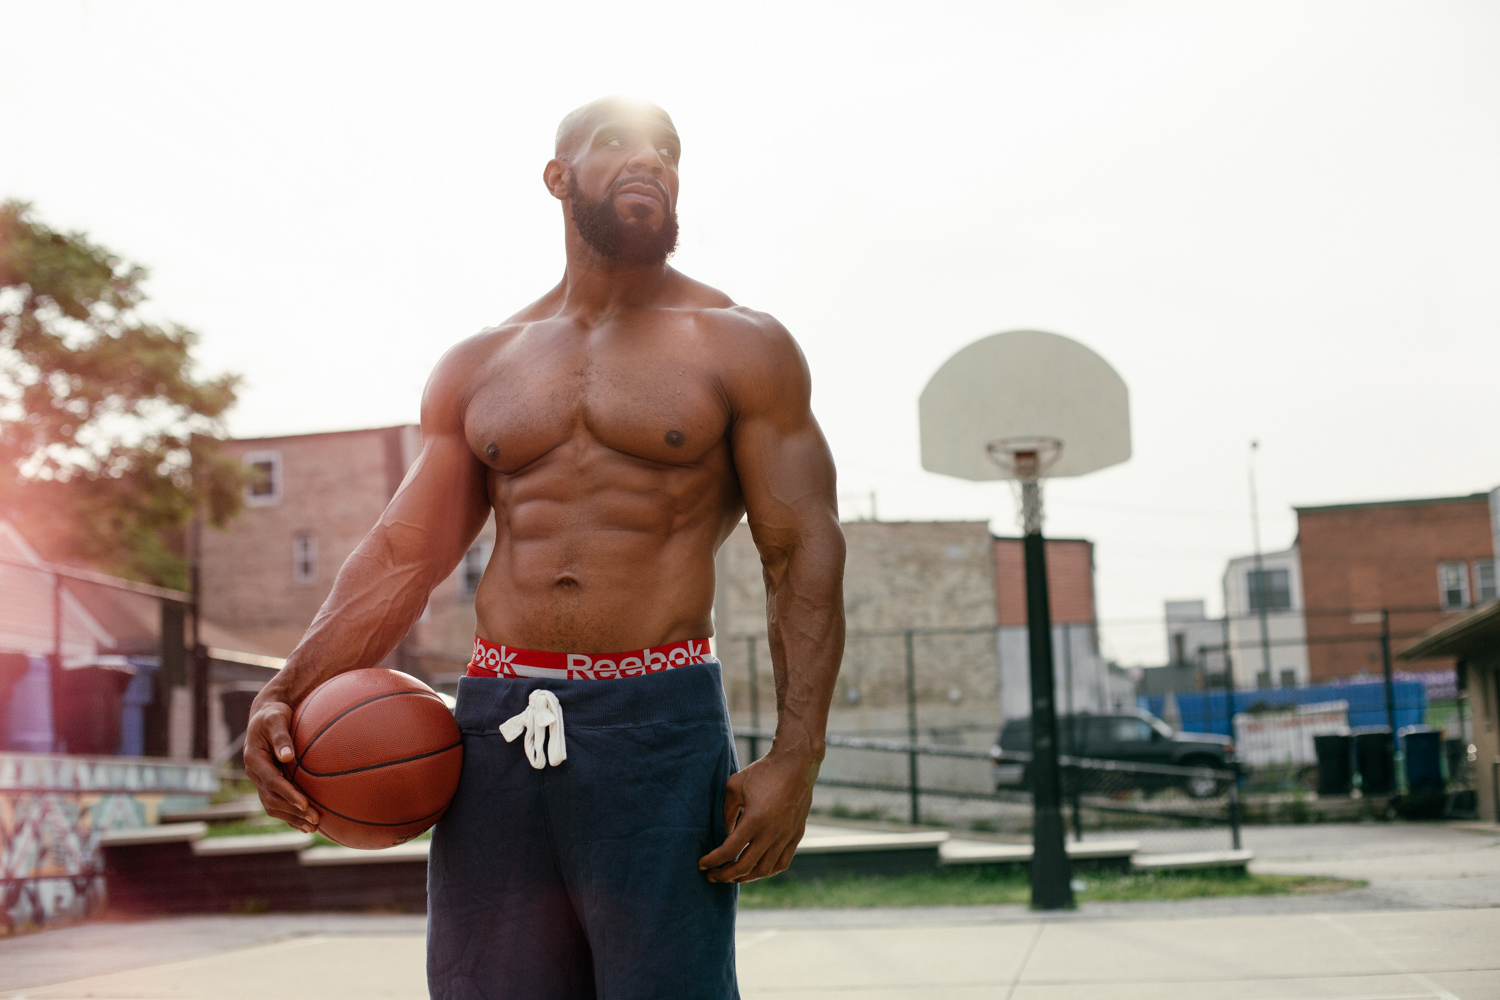 man-poses-for-basketball-photo